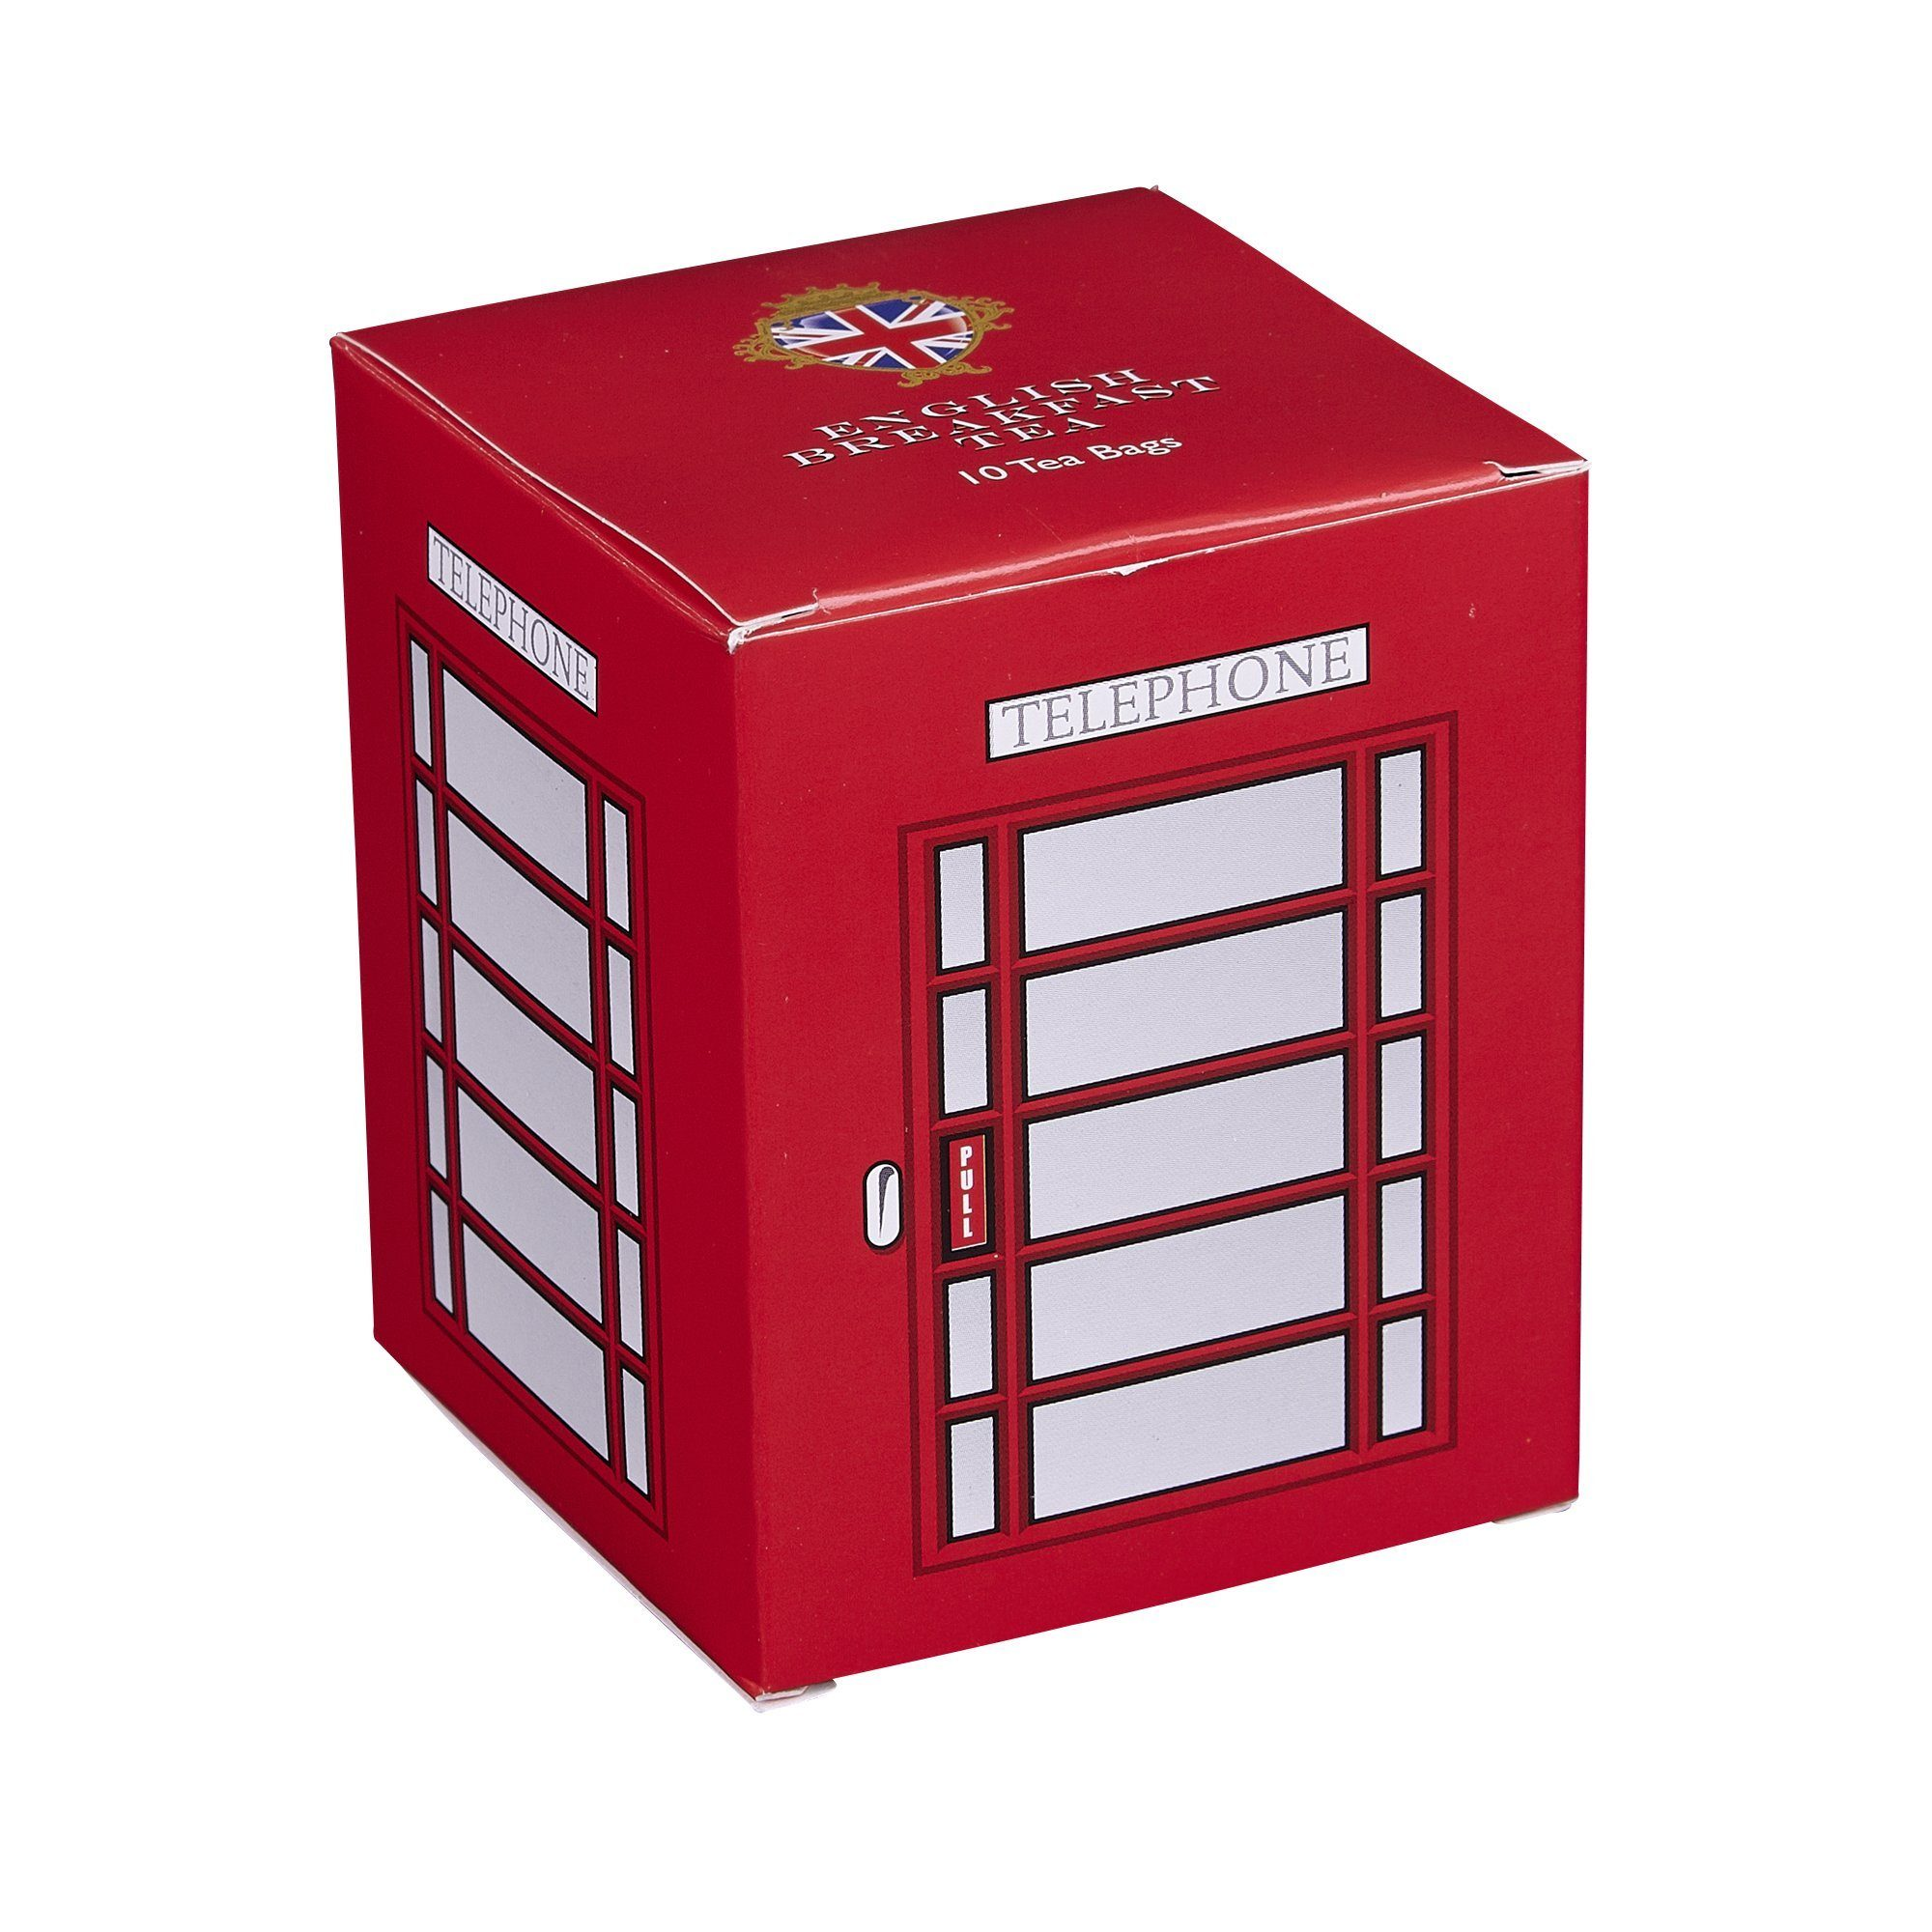 English Telephone Box English Breakfast Tea 10 Teabag Carton Black Tea New English Teas